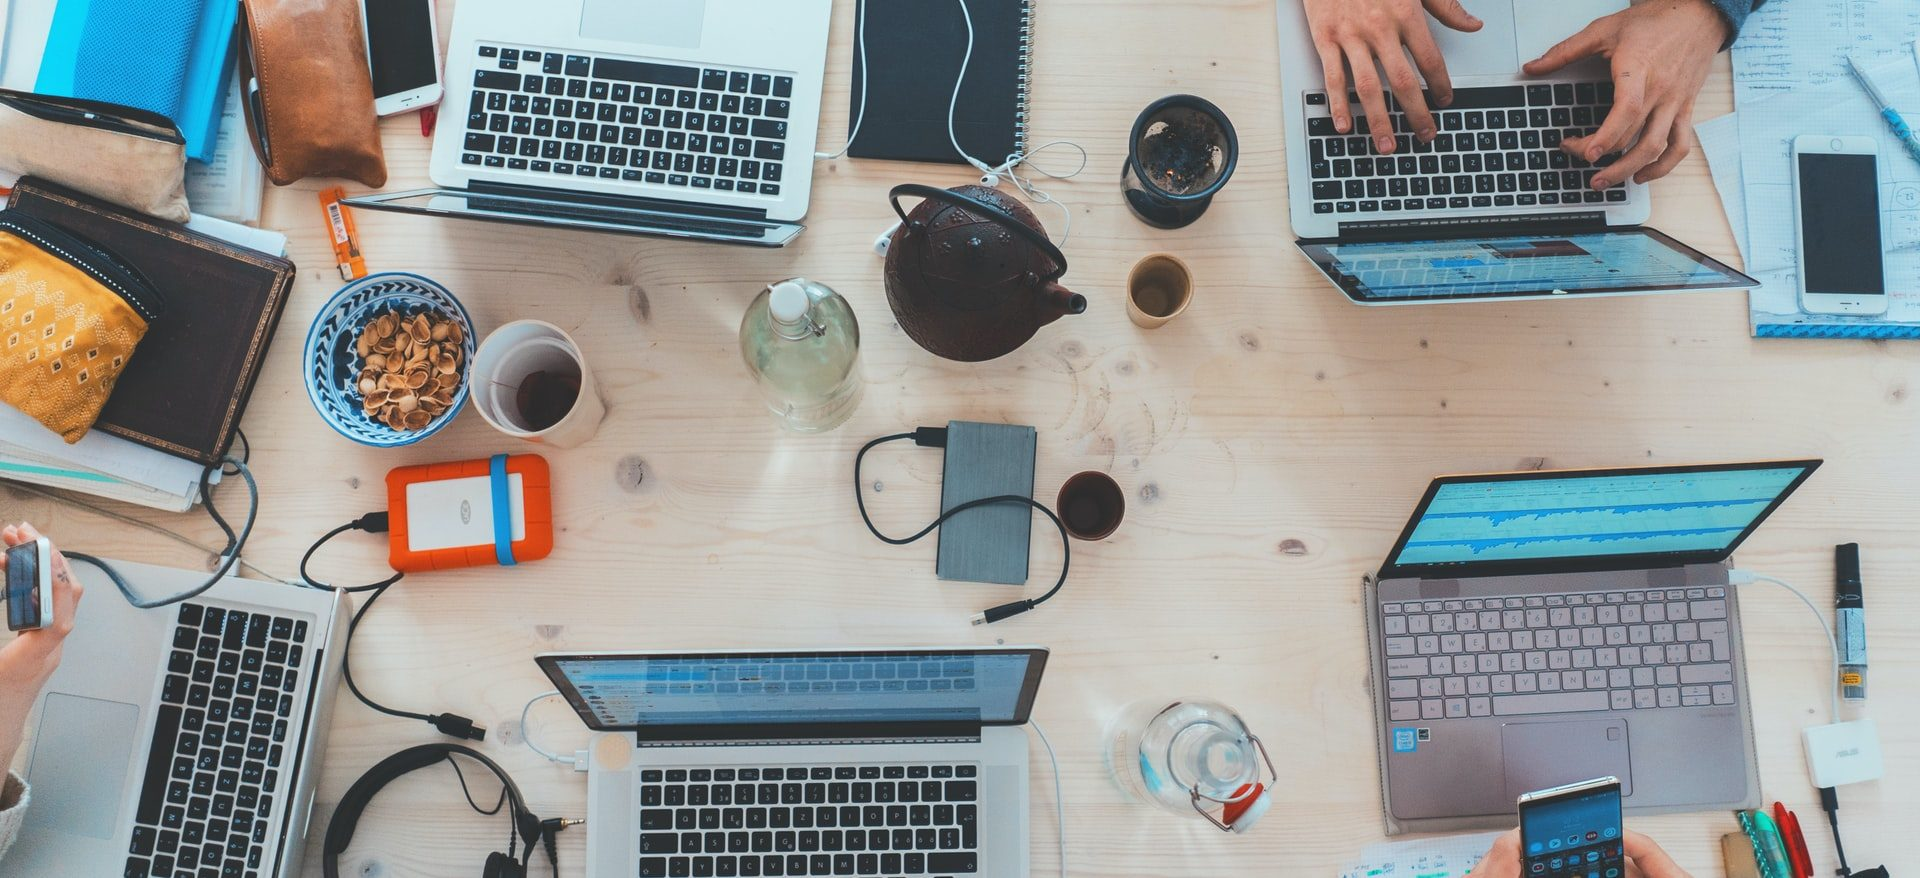 Laptops, hard drives and tea, people working on a shared table. Photo by Marvin Meyer on Unsplash